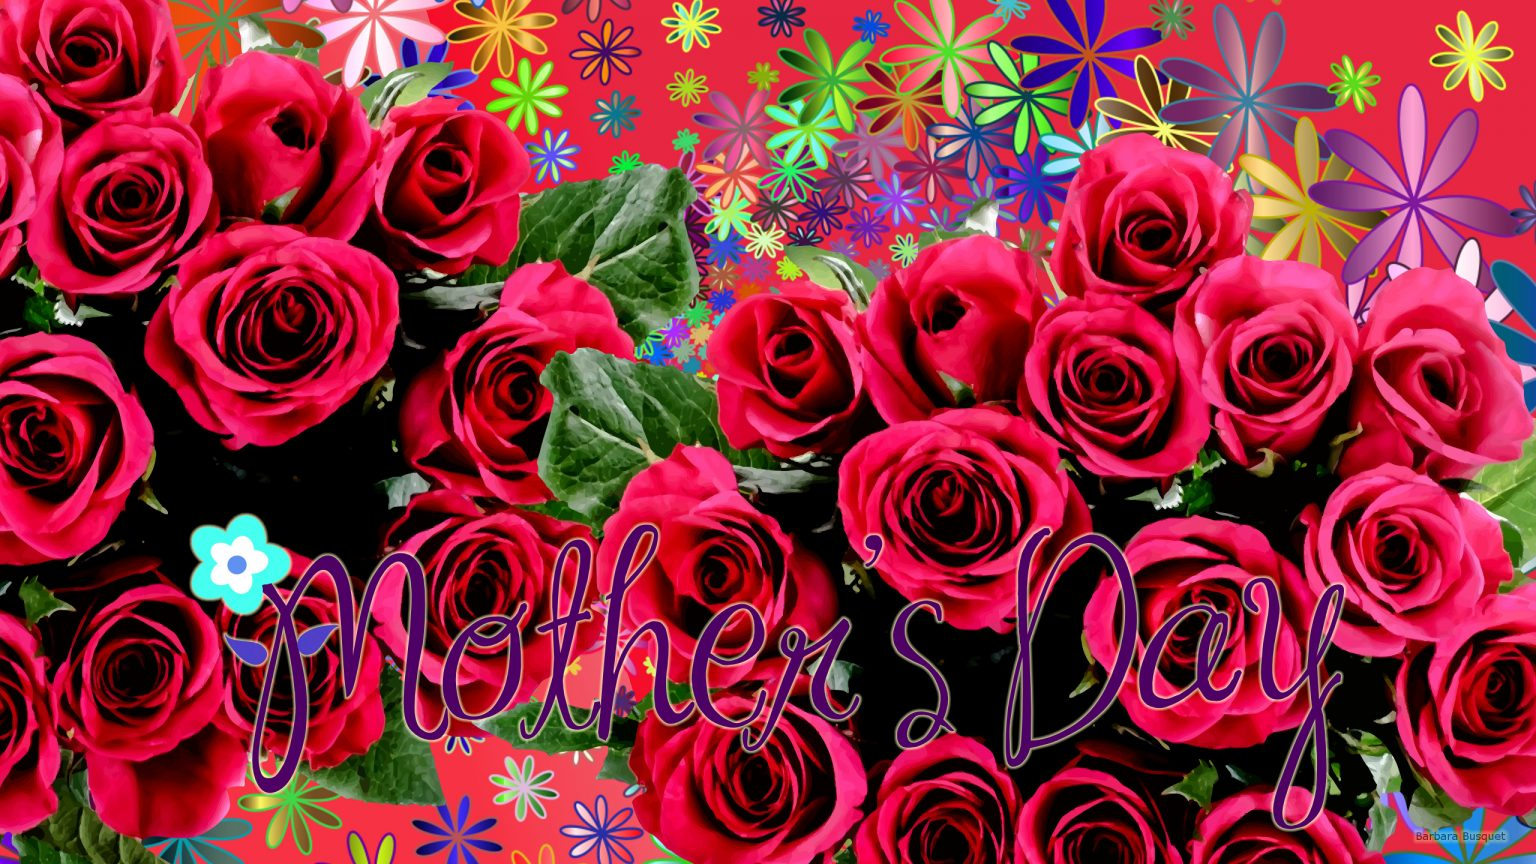 Mother's Day wallpapers with flowers - Barbara's HD Wallpapers